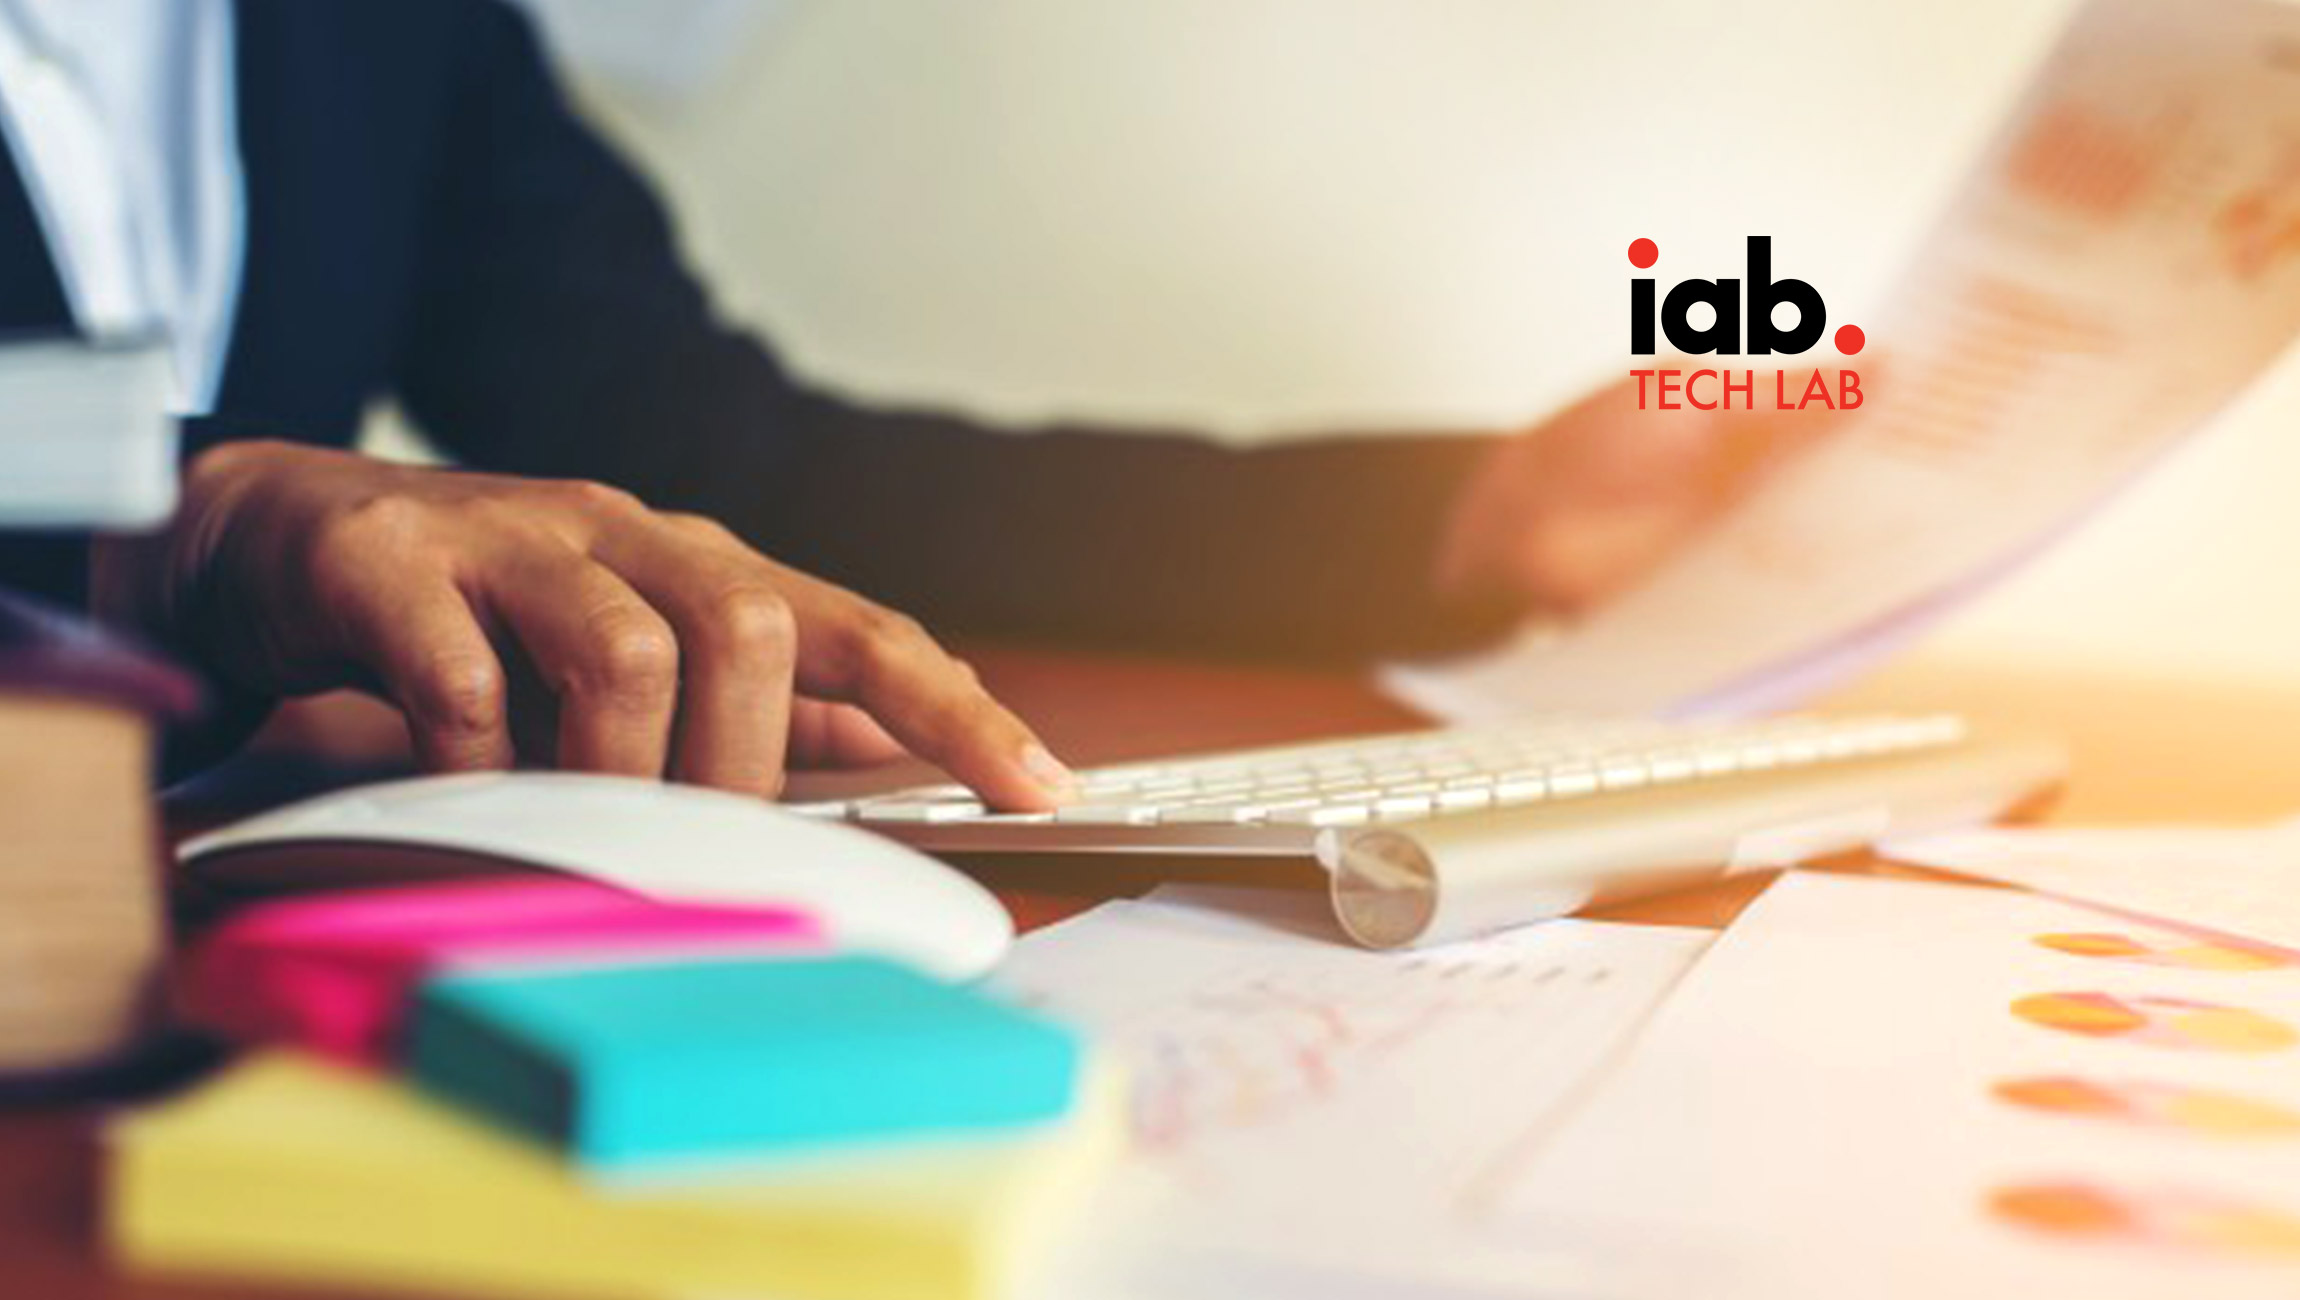 IAB Technology